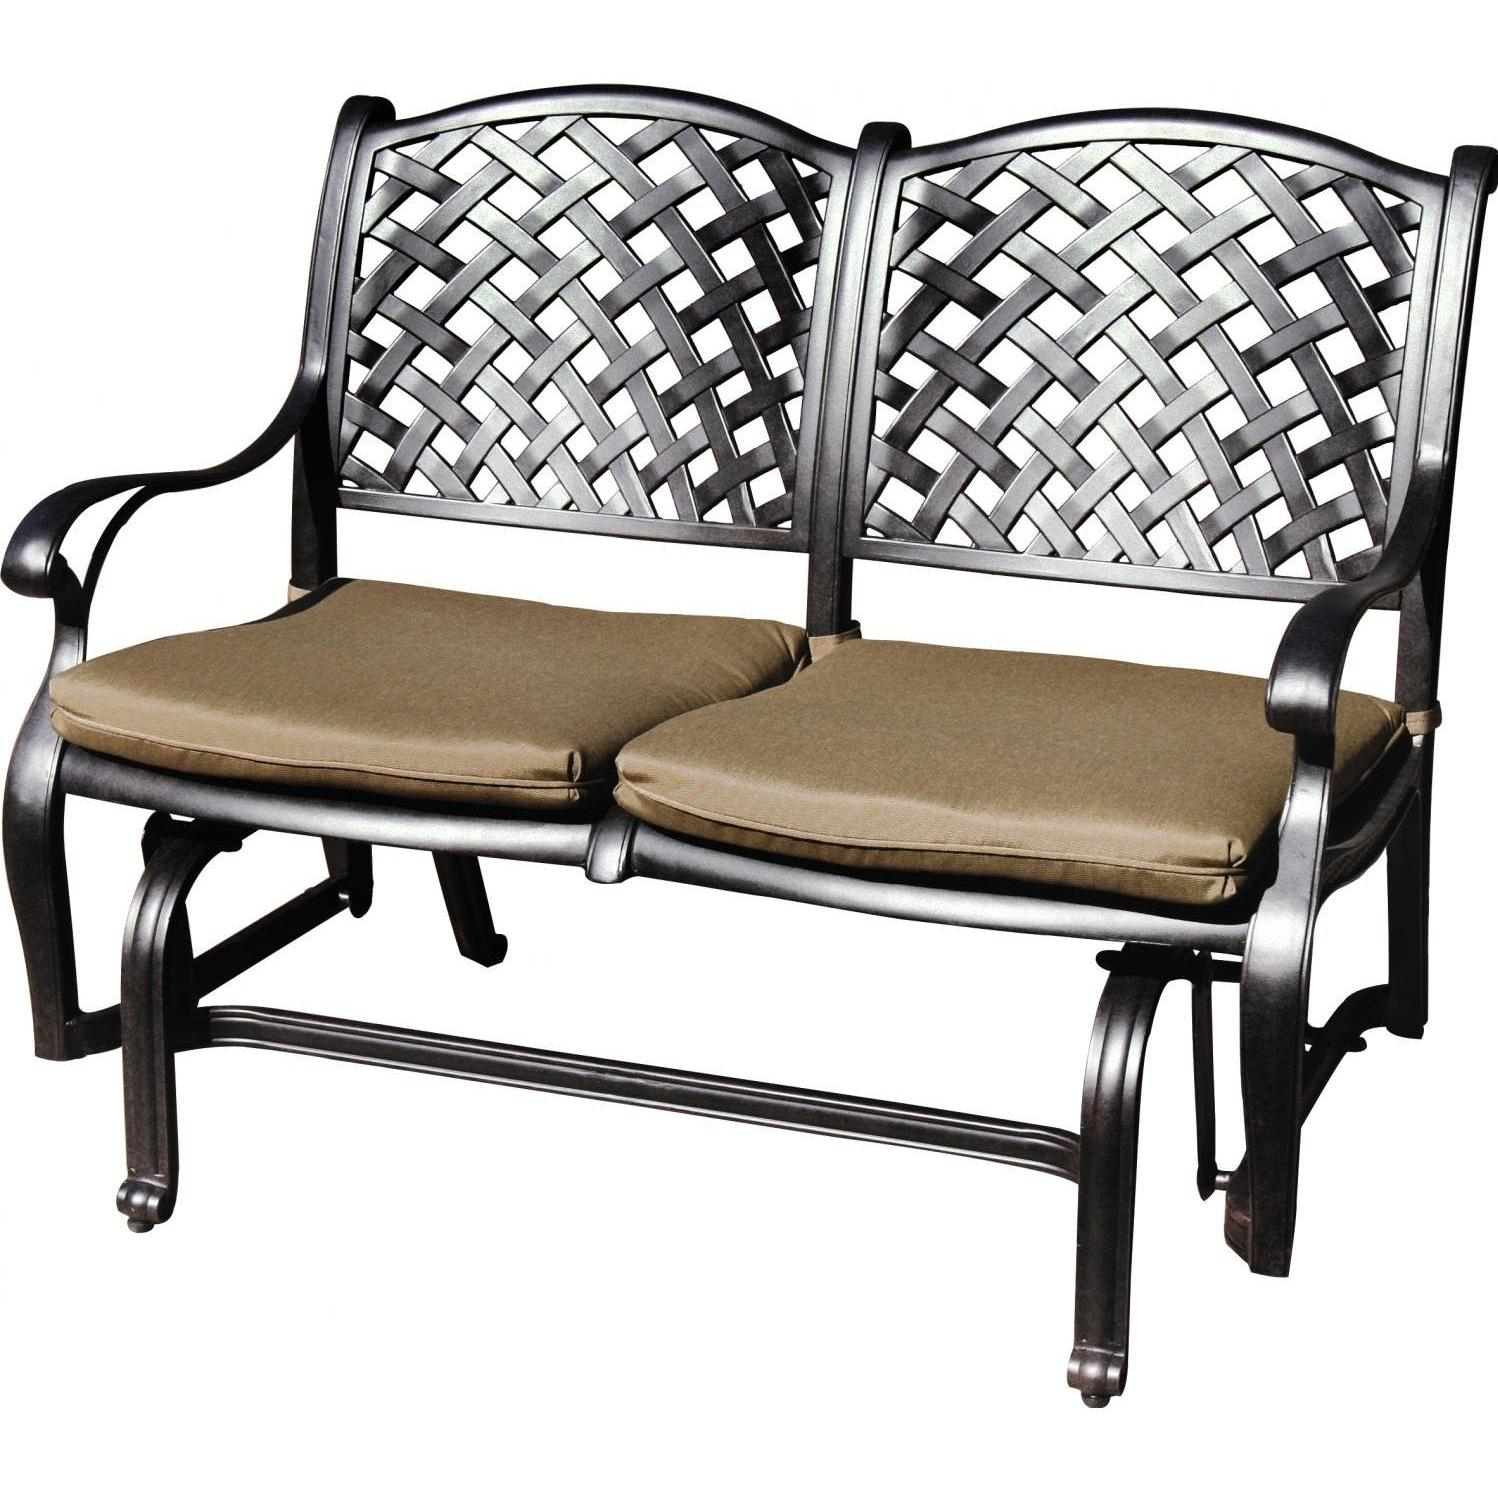 Darlee Nassau Cast Aluminum Patio Bench Glider Intended For 1 Person Antique Black Steel Outdoor Gliders (View 3 of 25)